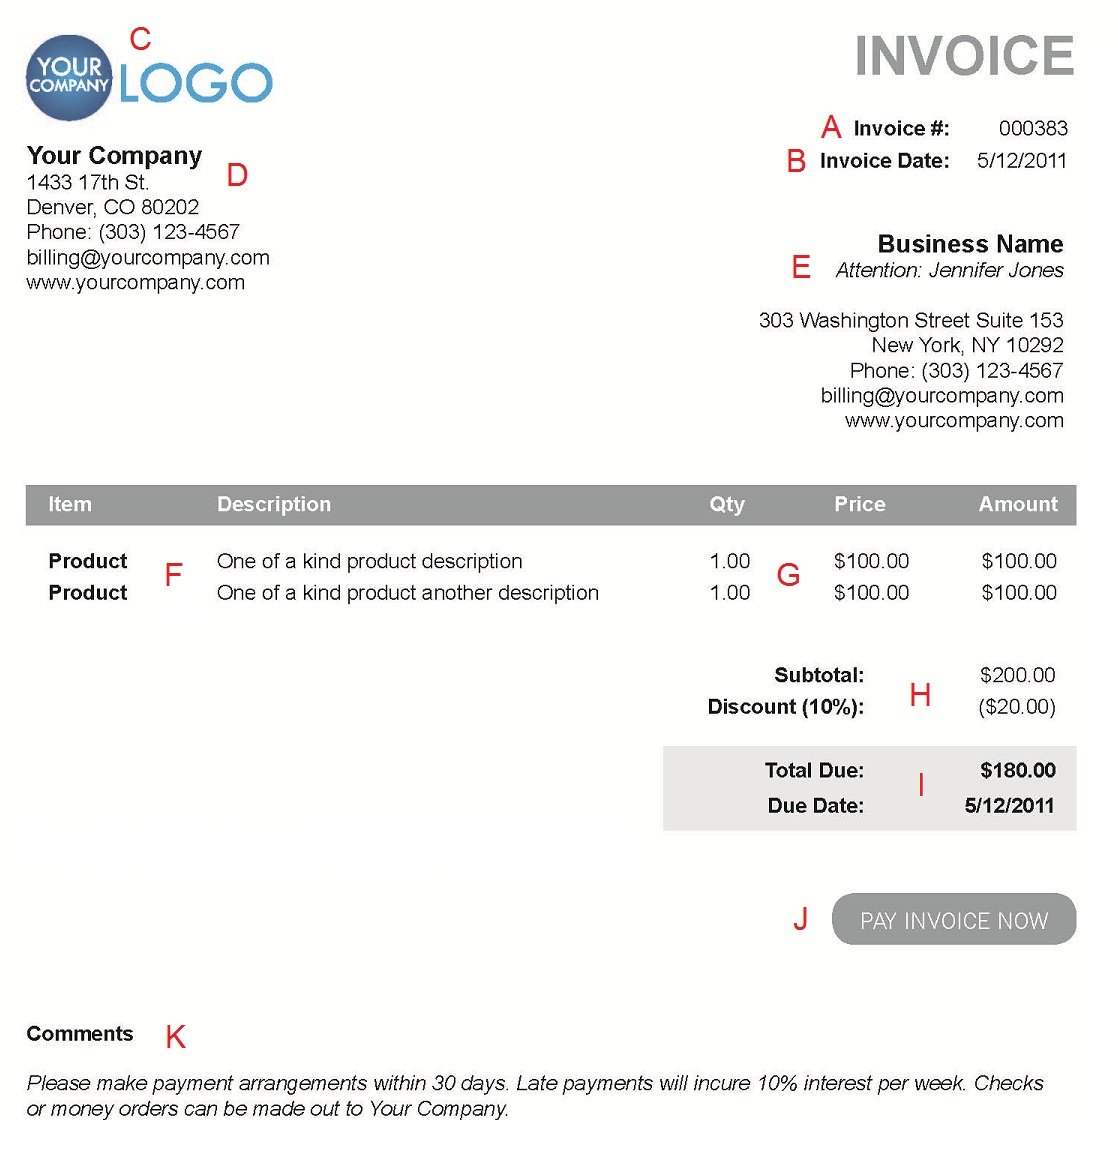 Modaoxus  Outstanding The  Different Sections Of An Electronic Payment Invoice With Magnificent A  With Charming Automotive Invoice Template Also Nissan Rogue Invoice Price In Addition Free Online Invoicing Software And Dealer Invoice Price Vs Msrp As Well As Professional Invoices Additionally Freight Invoice Template From Paysimplecom With Modaoxus  Magnificent The  Different Sections Of An Electronic Payment Invoice With Charming A  And Outstanding Automotive Invoice Template Also Nissan Rogue Invoice Price In Addition Free Online Invoicing Software From Paysimplecom